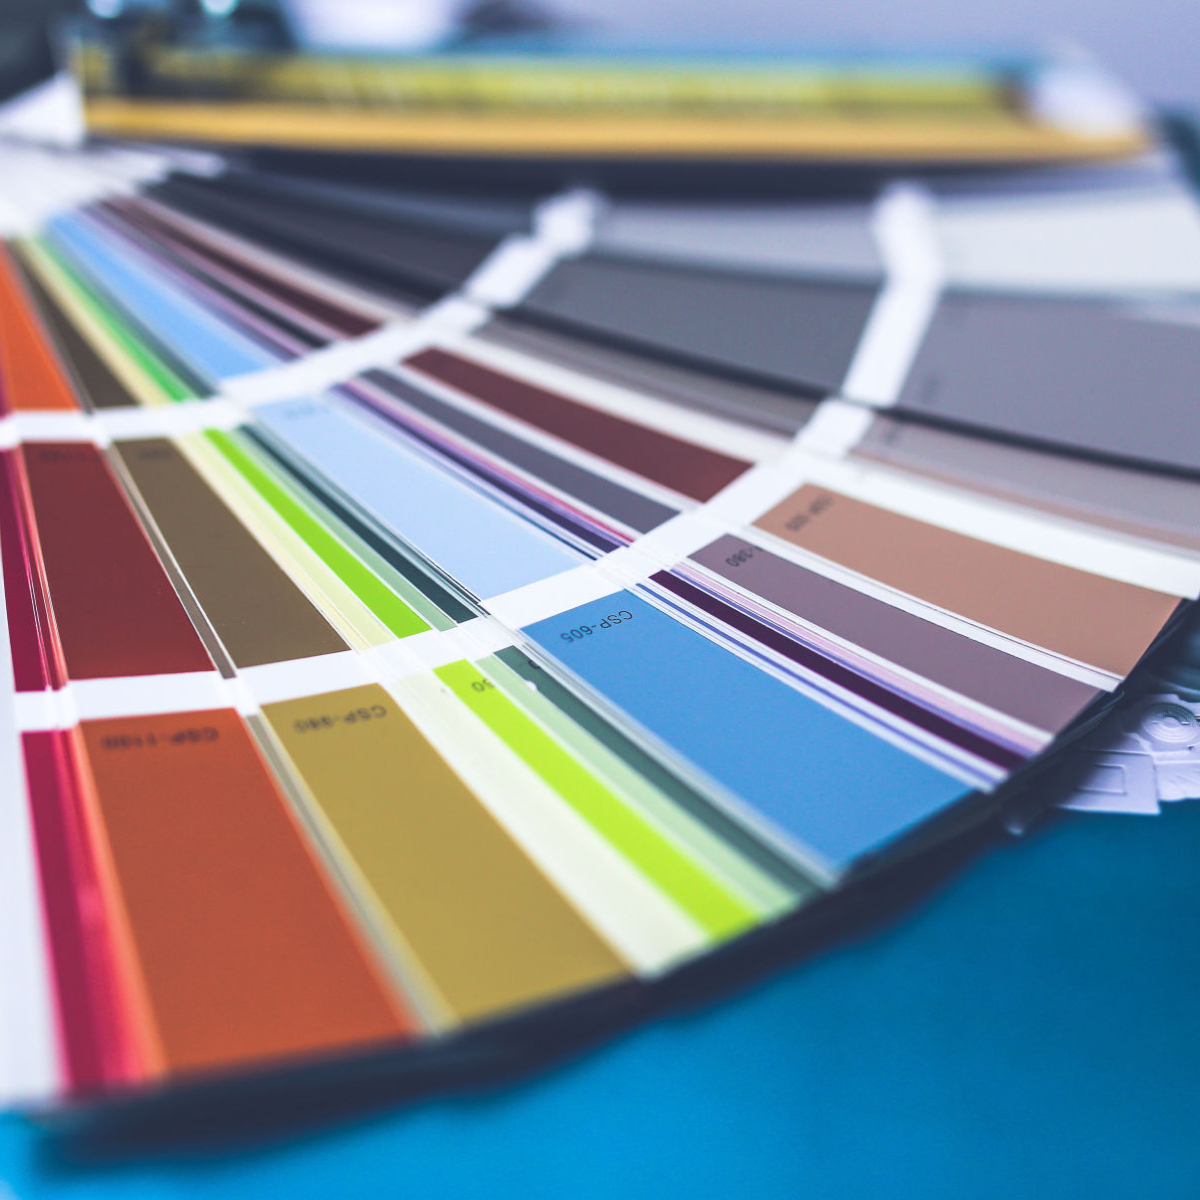 The use of colour cards and how colour theory works. Our websites are designed in WordPress & colour selection is a key part of keeping a website on brand - The Marketing Rocket - Taunton, Somerset - Wed Design & SEO Marketing Agency